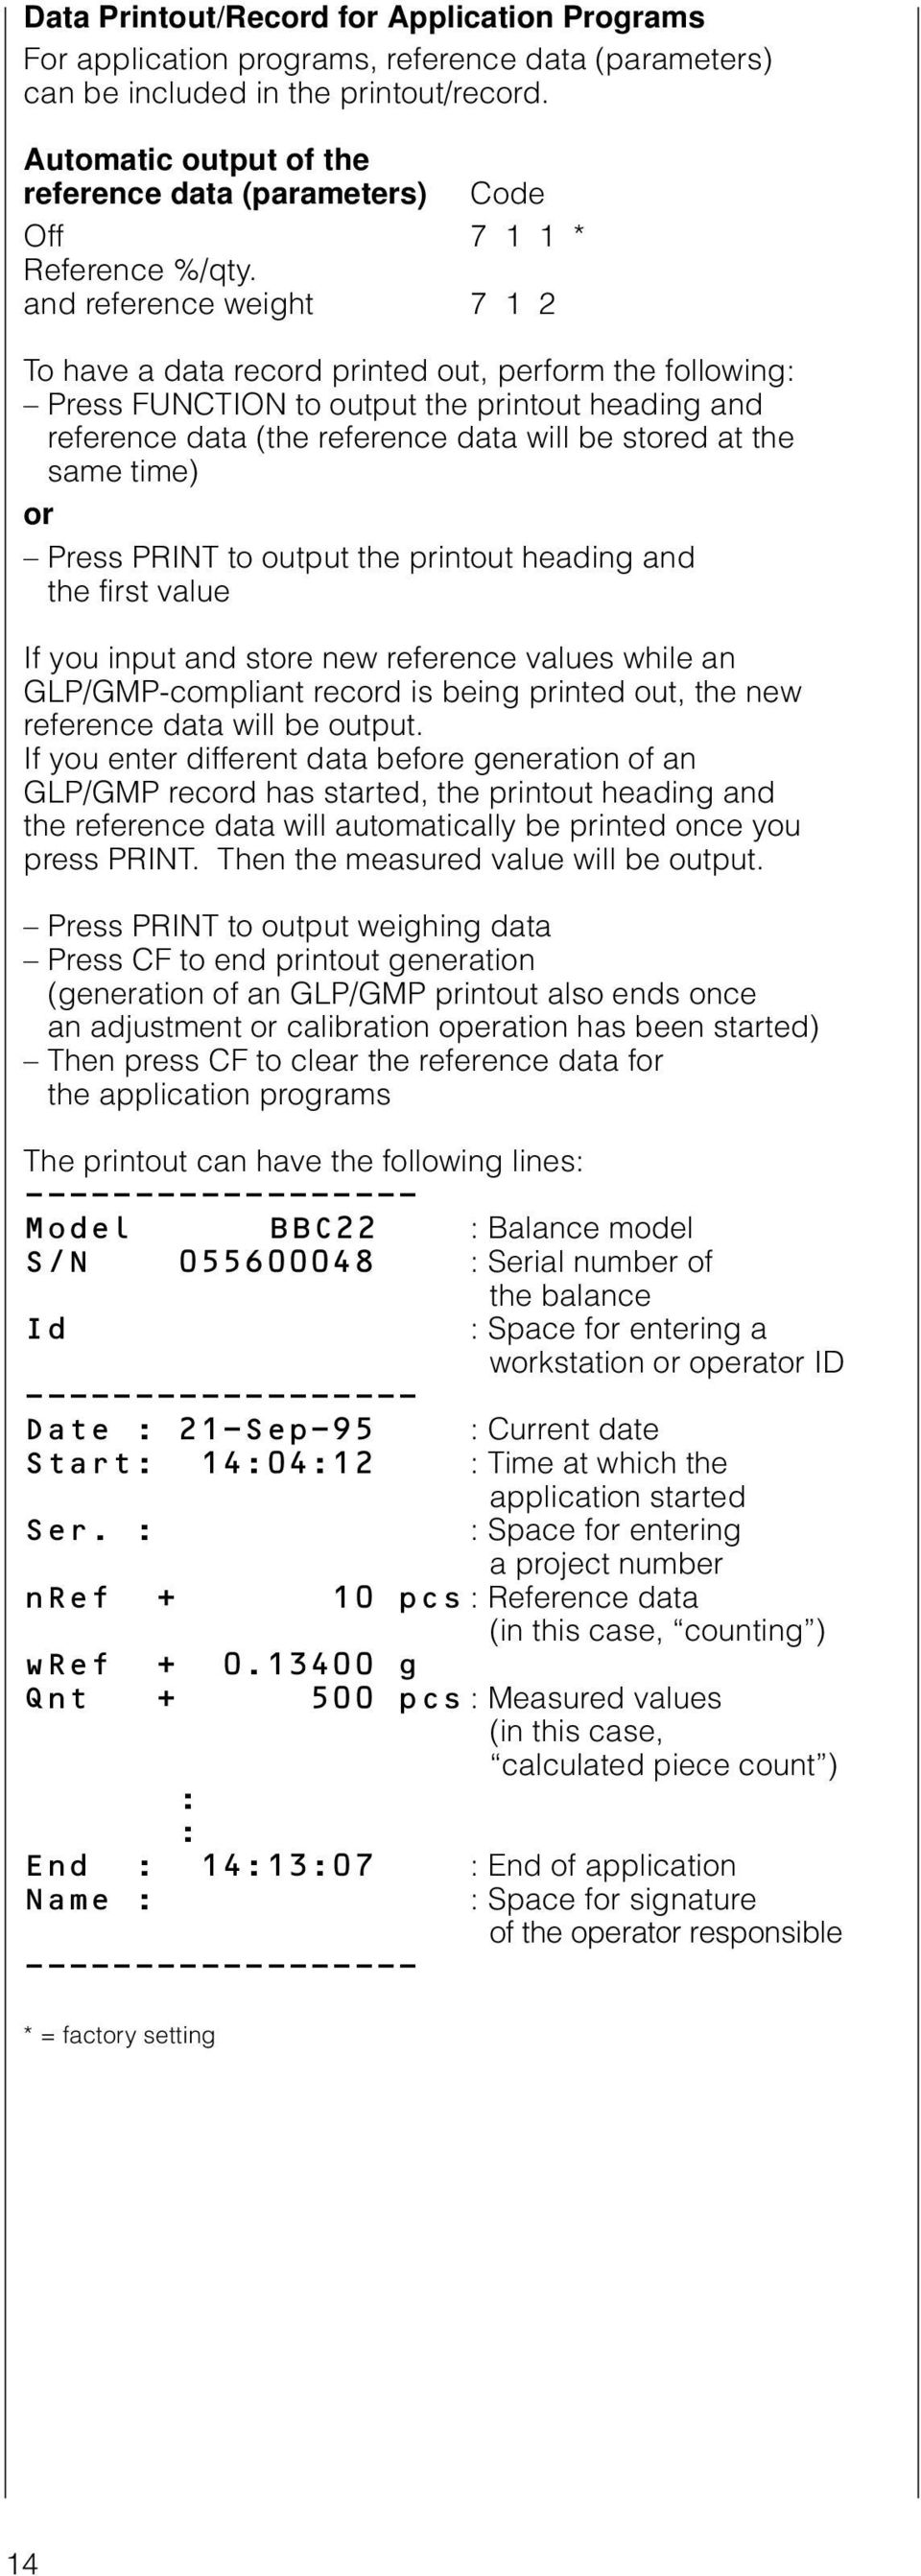 and reference weight 7 1 2 To have a data record printed out, perform the following: Press FUNCTION to output the printout heading and reference data (the reference data will be stored at the same